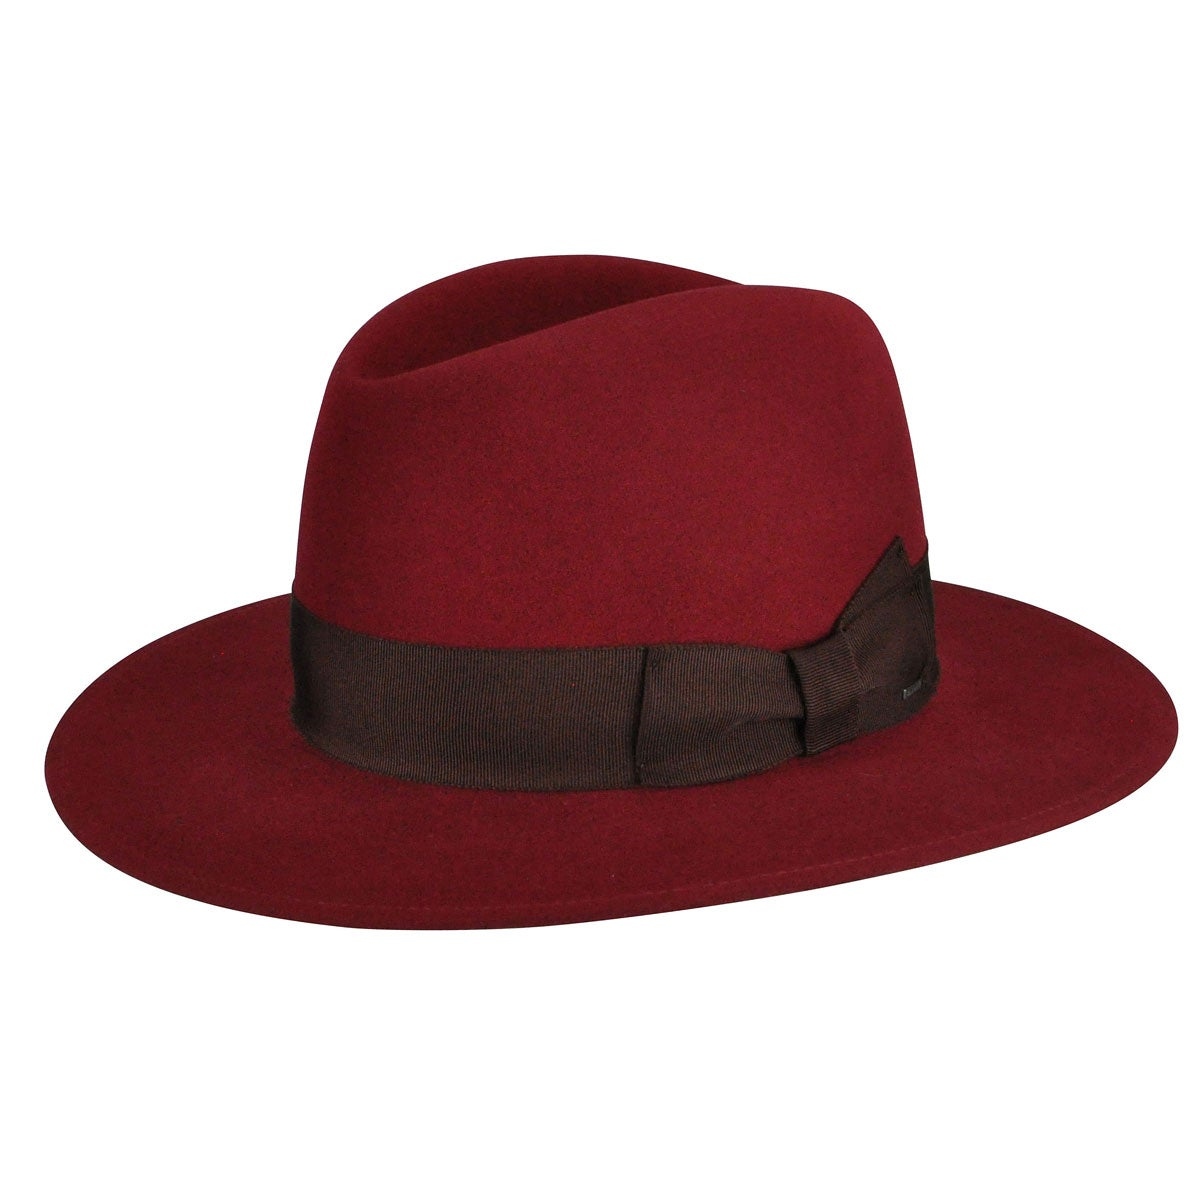 1920s Mens Hats – 8 Popular Styles Hiram Tall Crown Fedora $125.00 AT vintagedancer.com